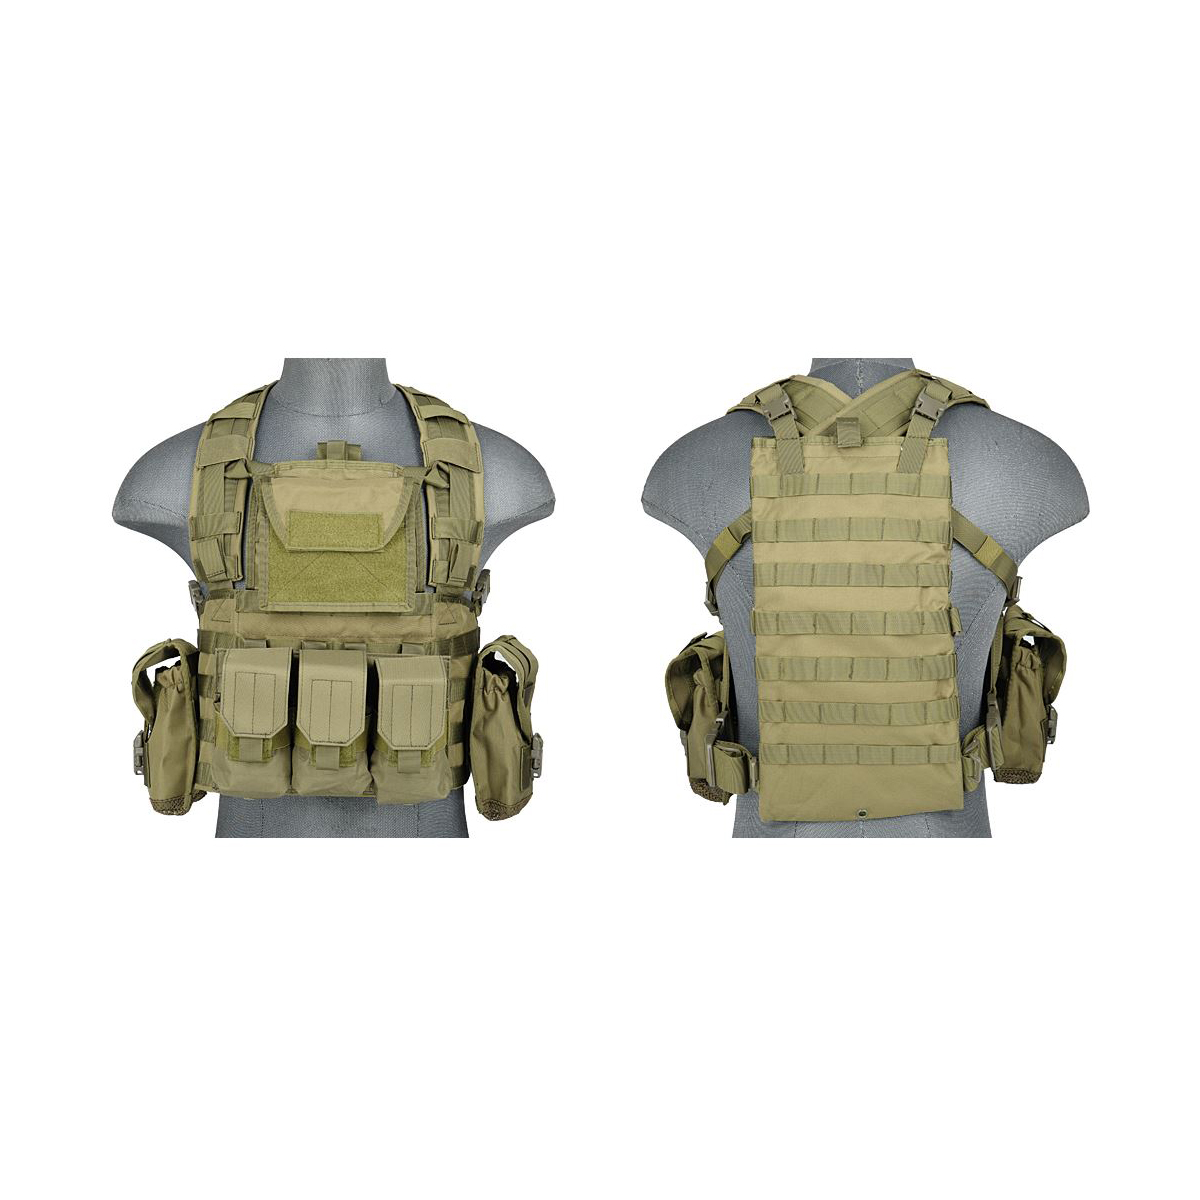 Lancer Tactical CA-307 Modular Chest Rig PALS MOLLE Vest and Hydration Pack Slot by Lancer Tactical